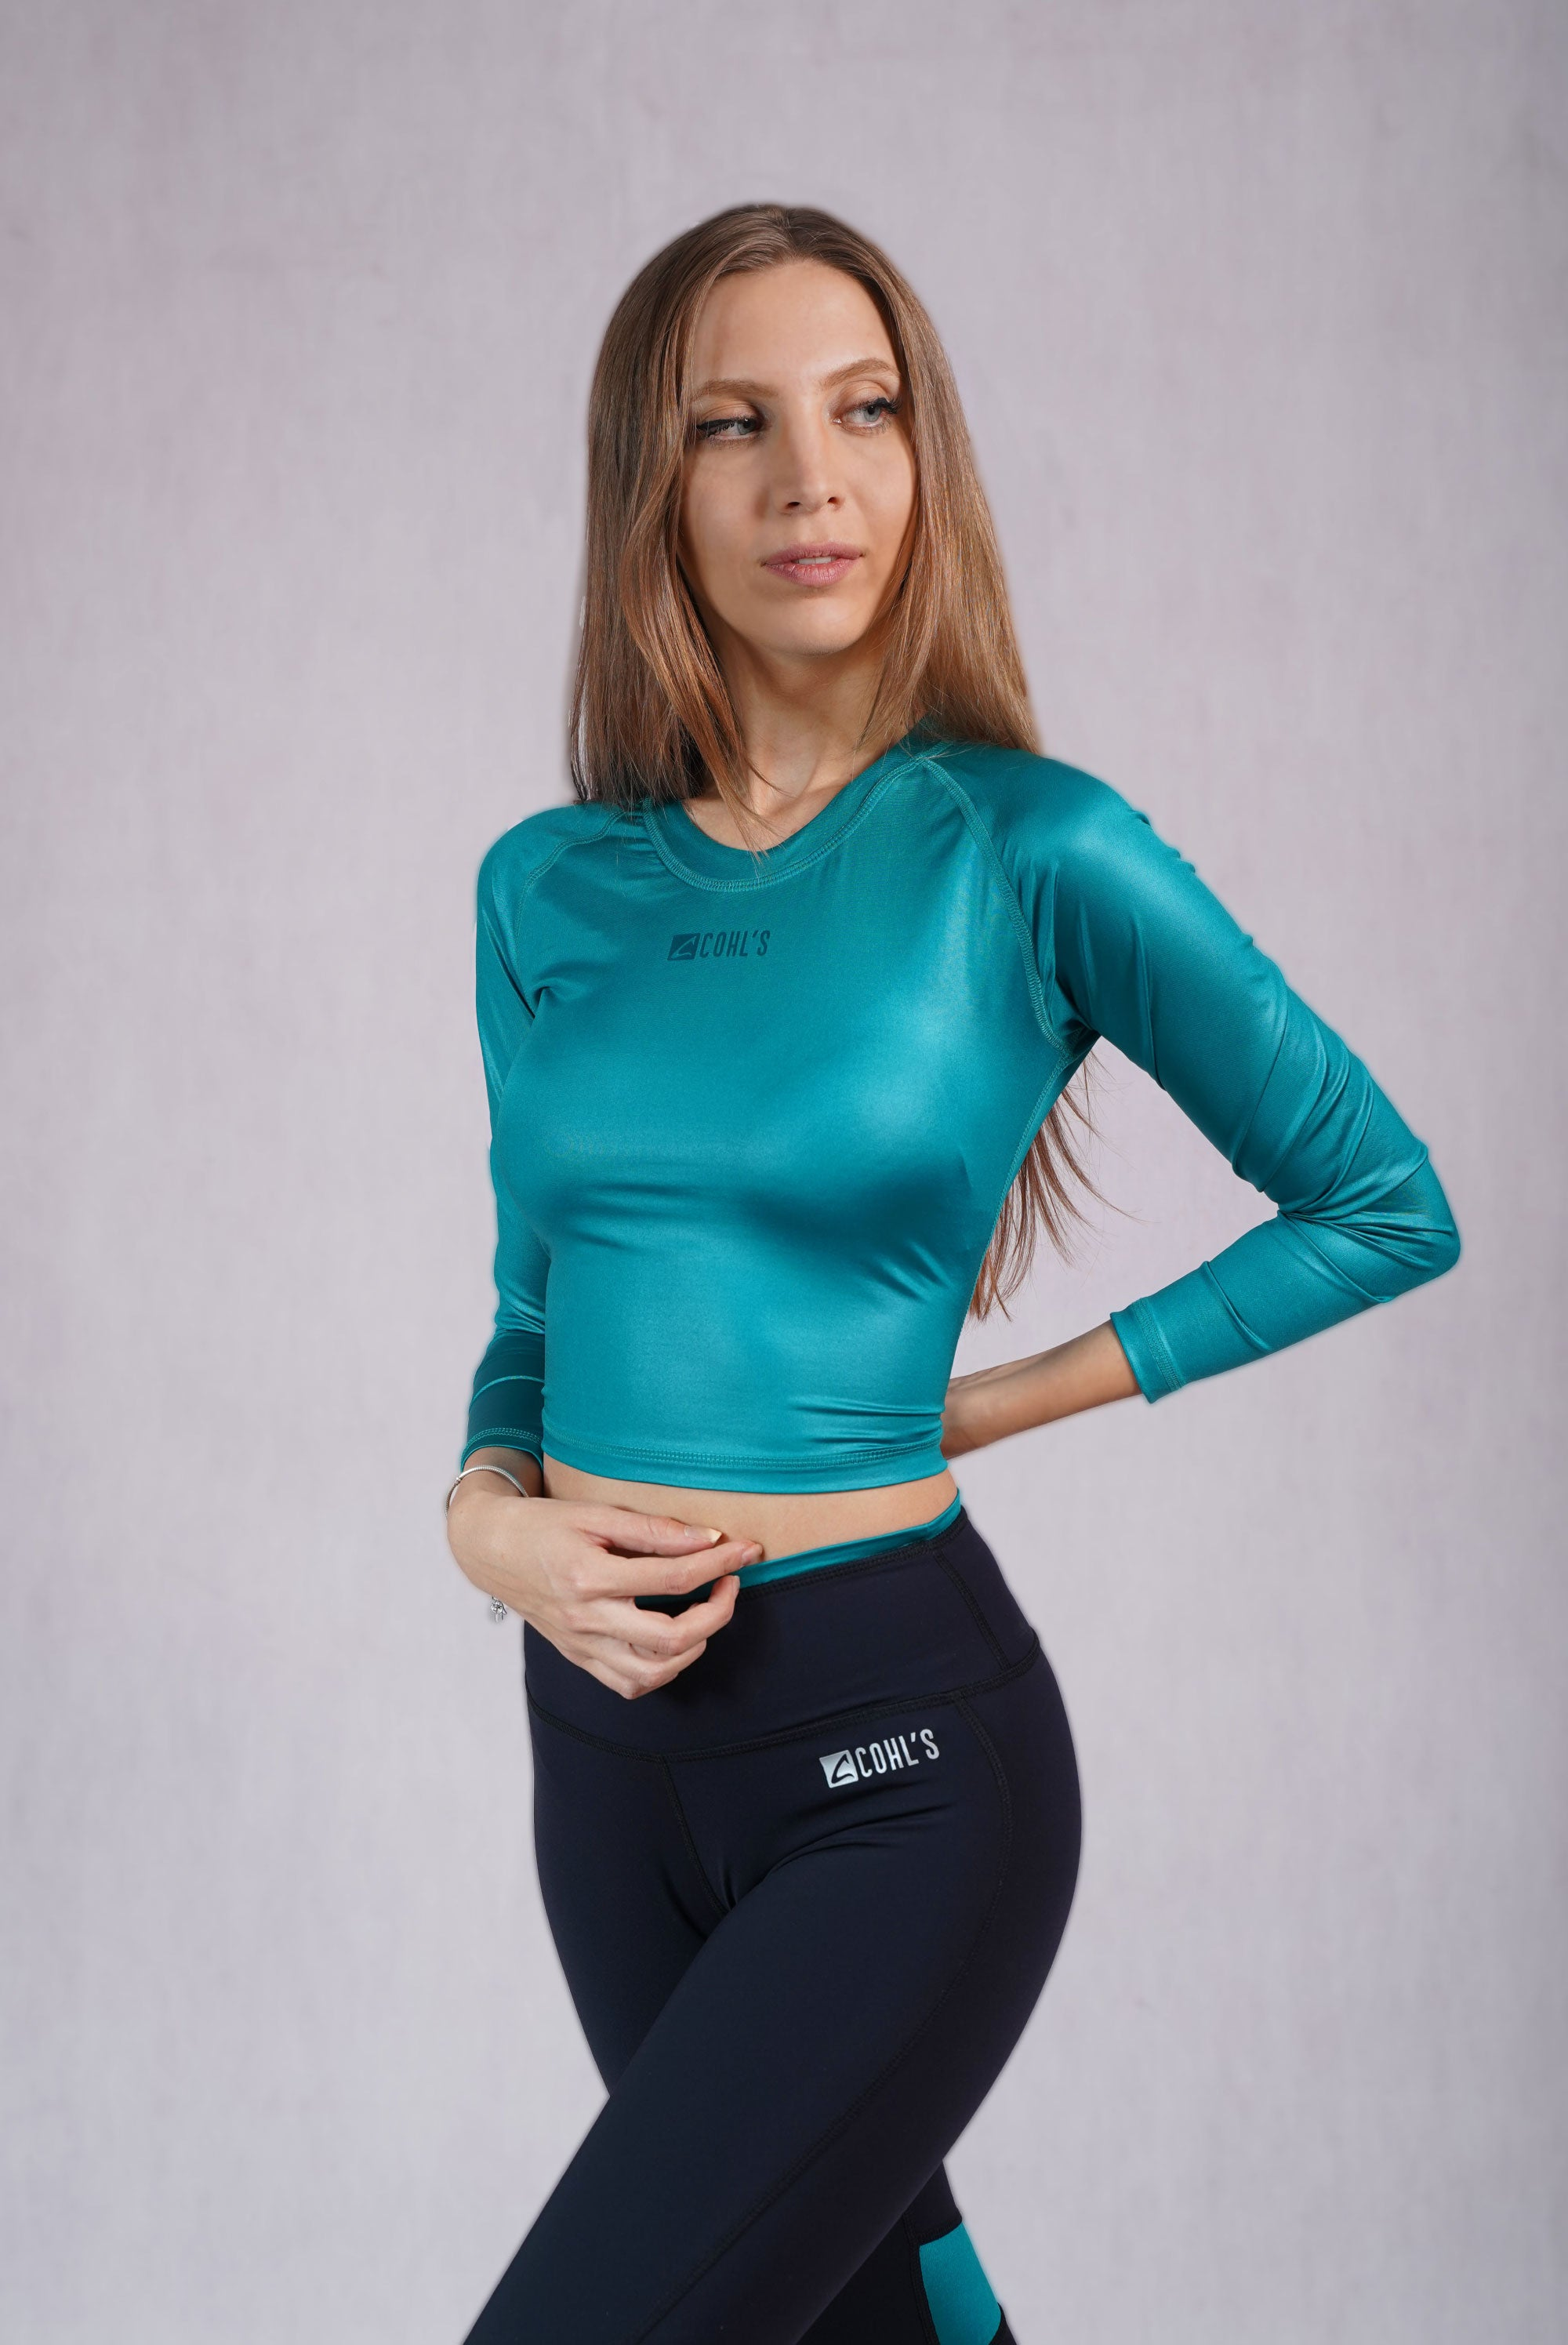 Glossy Emerald Slim Fit Crop Top - C142015